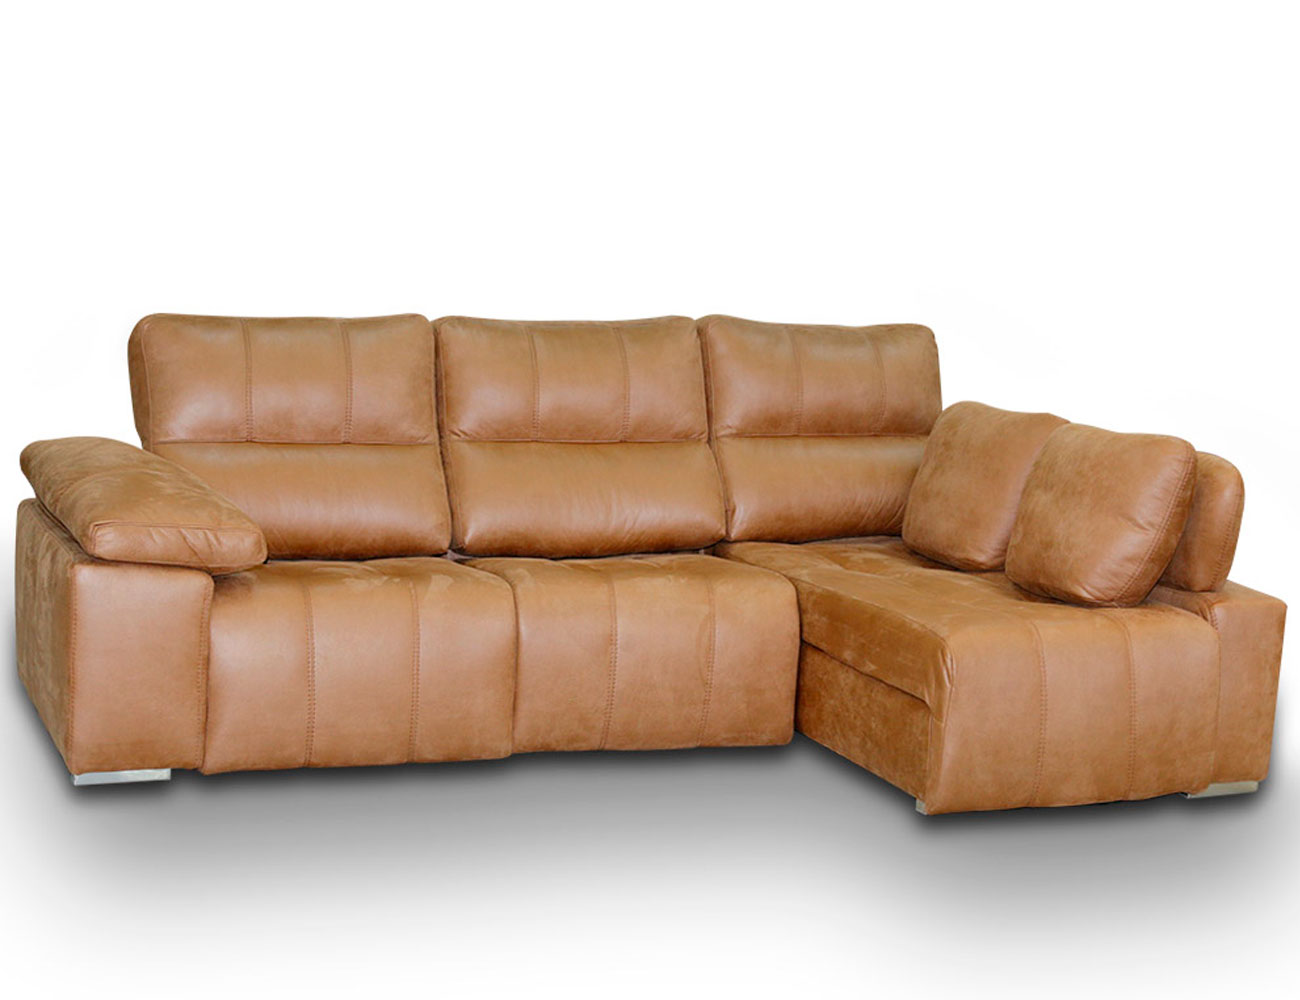 Sofa chaiselongue relax 2 motores anti manchas36